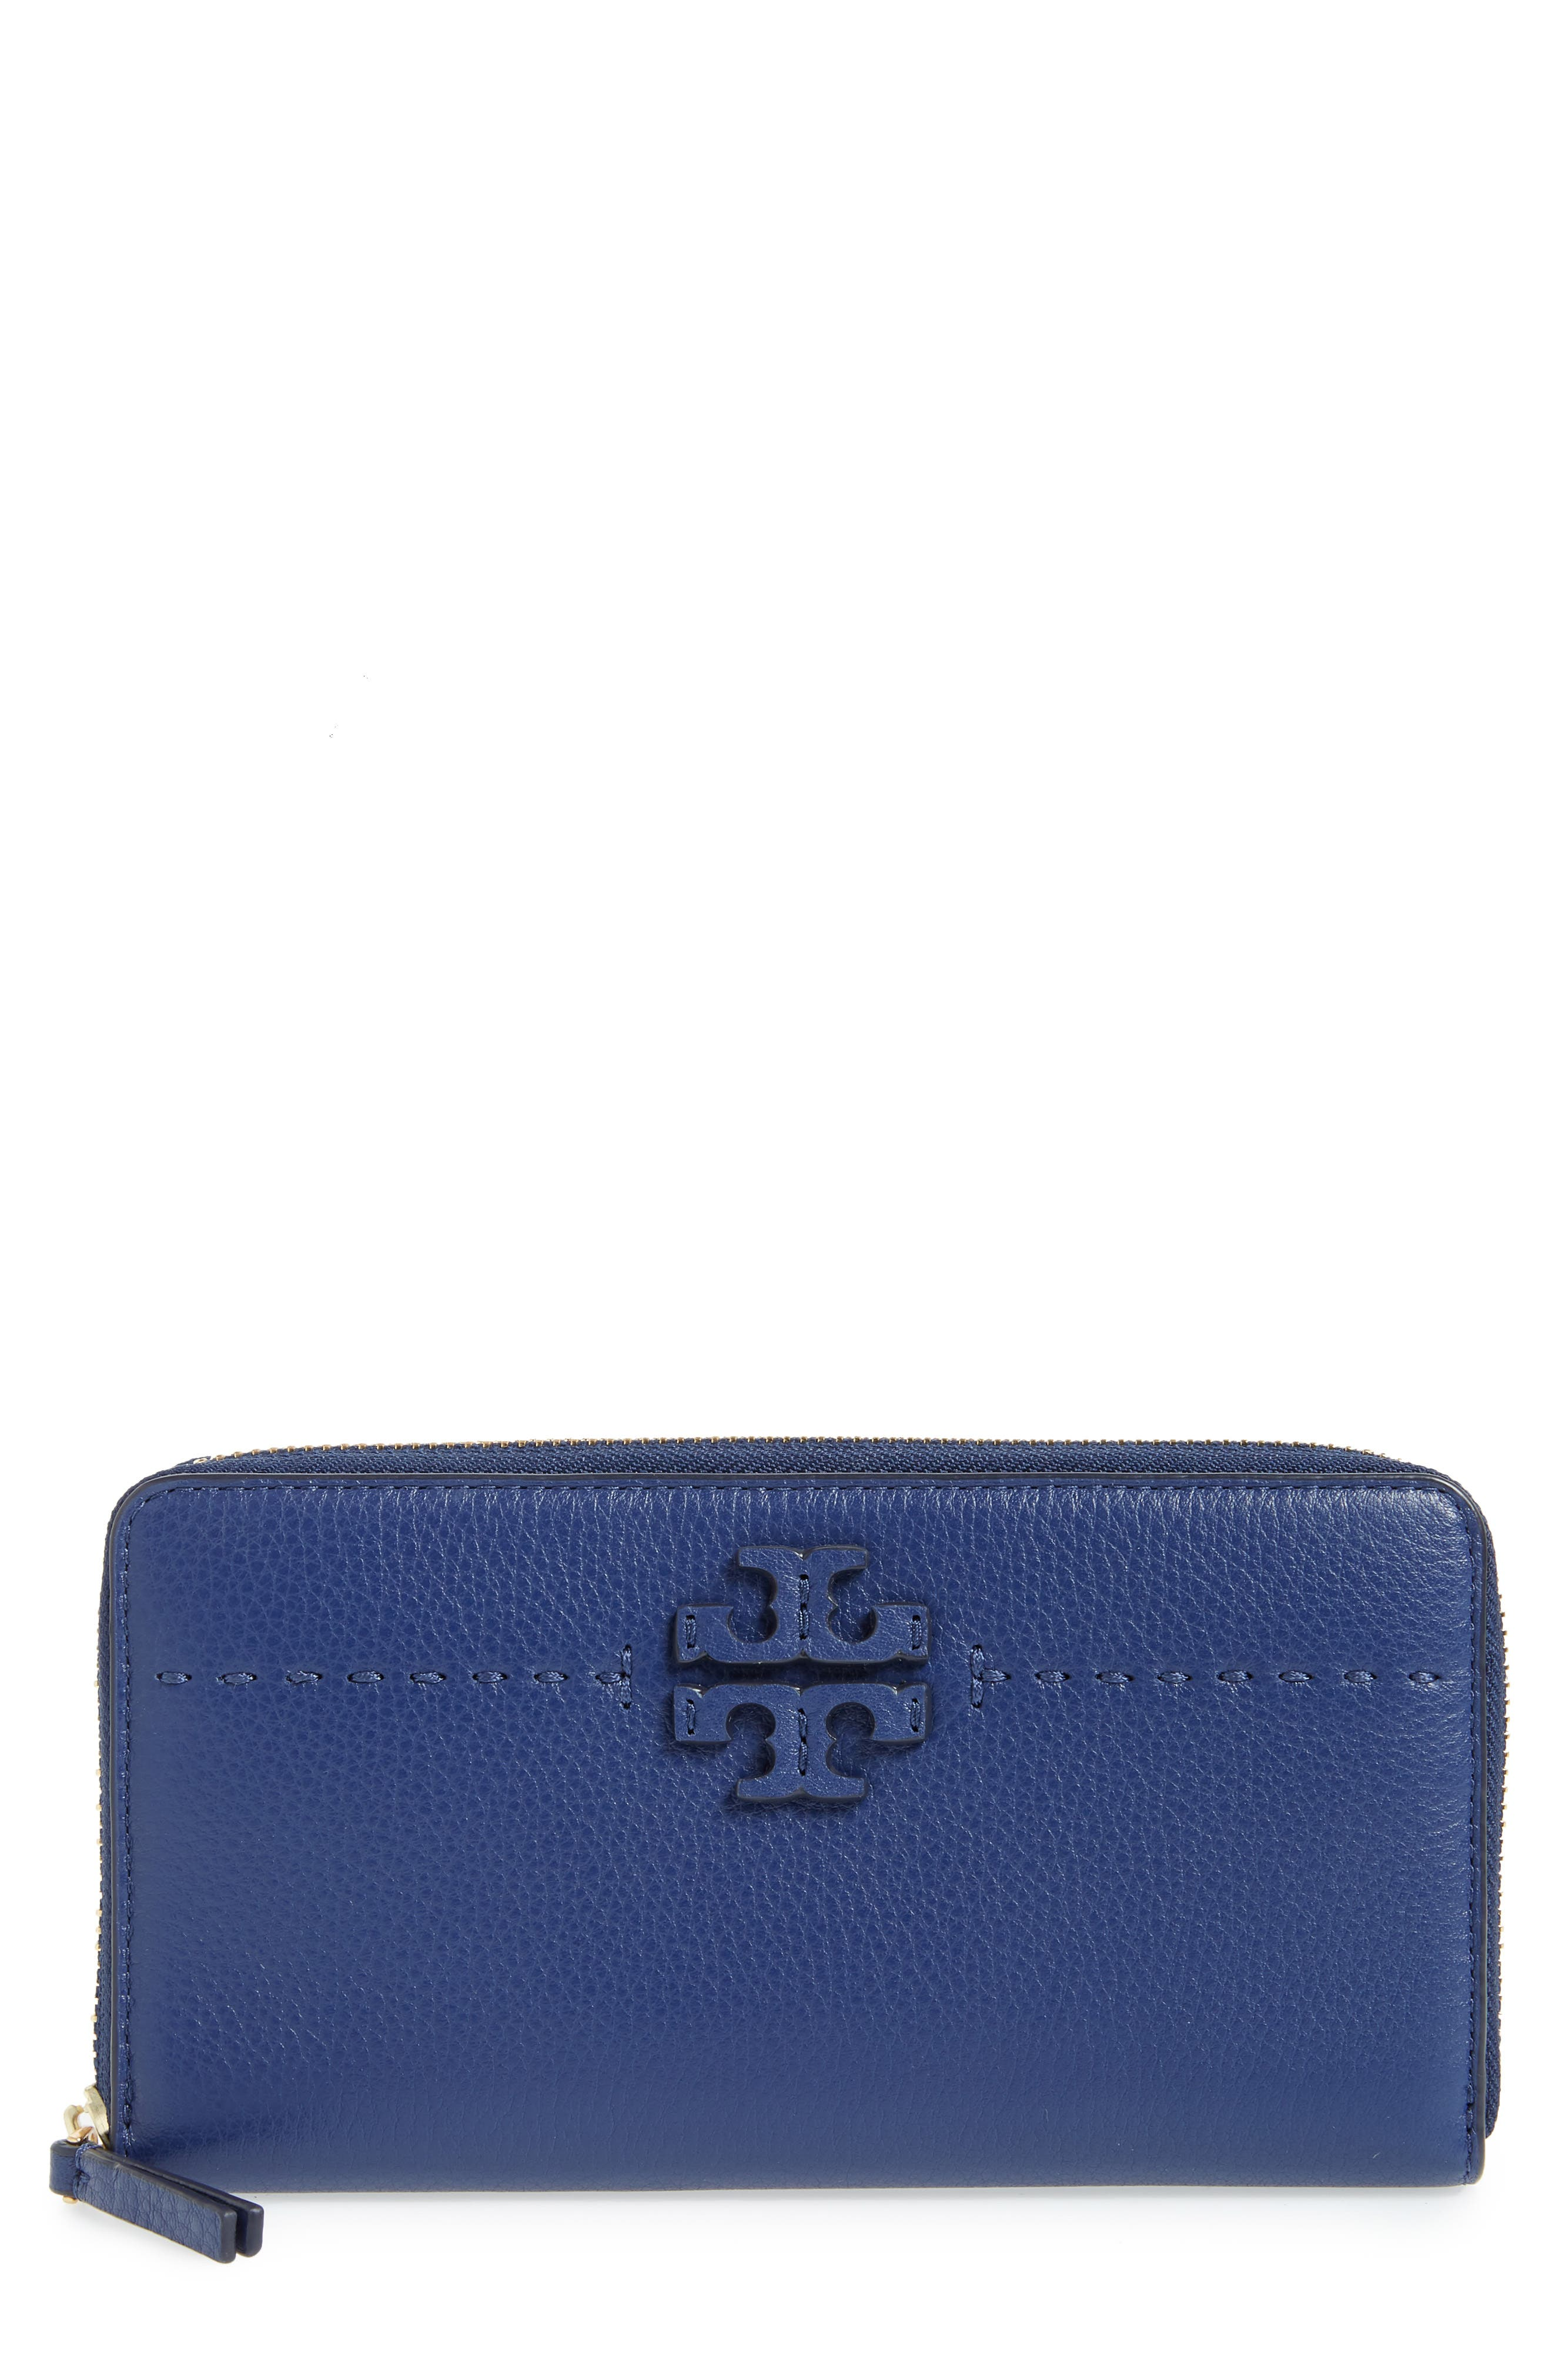 McGraw Leather Continental Zip Wallet,                         Main,                         color, Bright Indigo